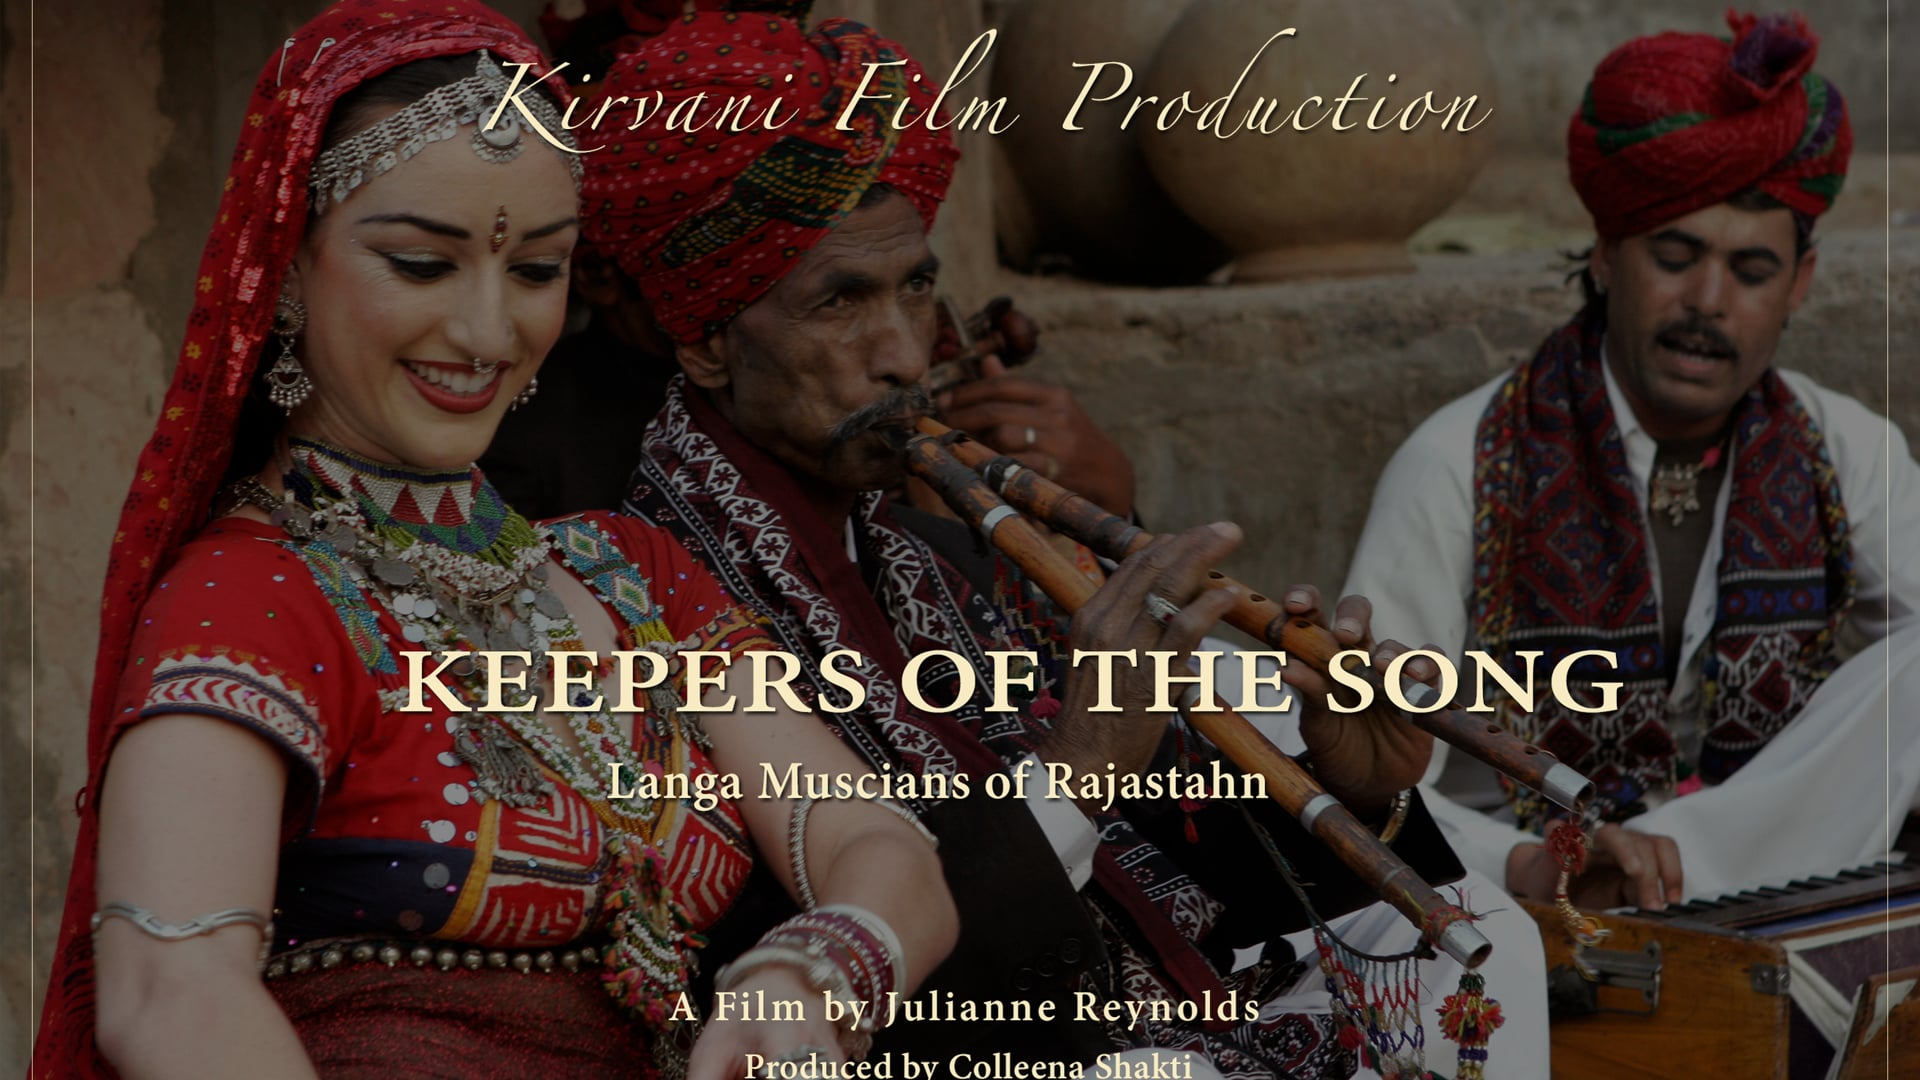 Keepers of the Song